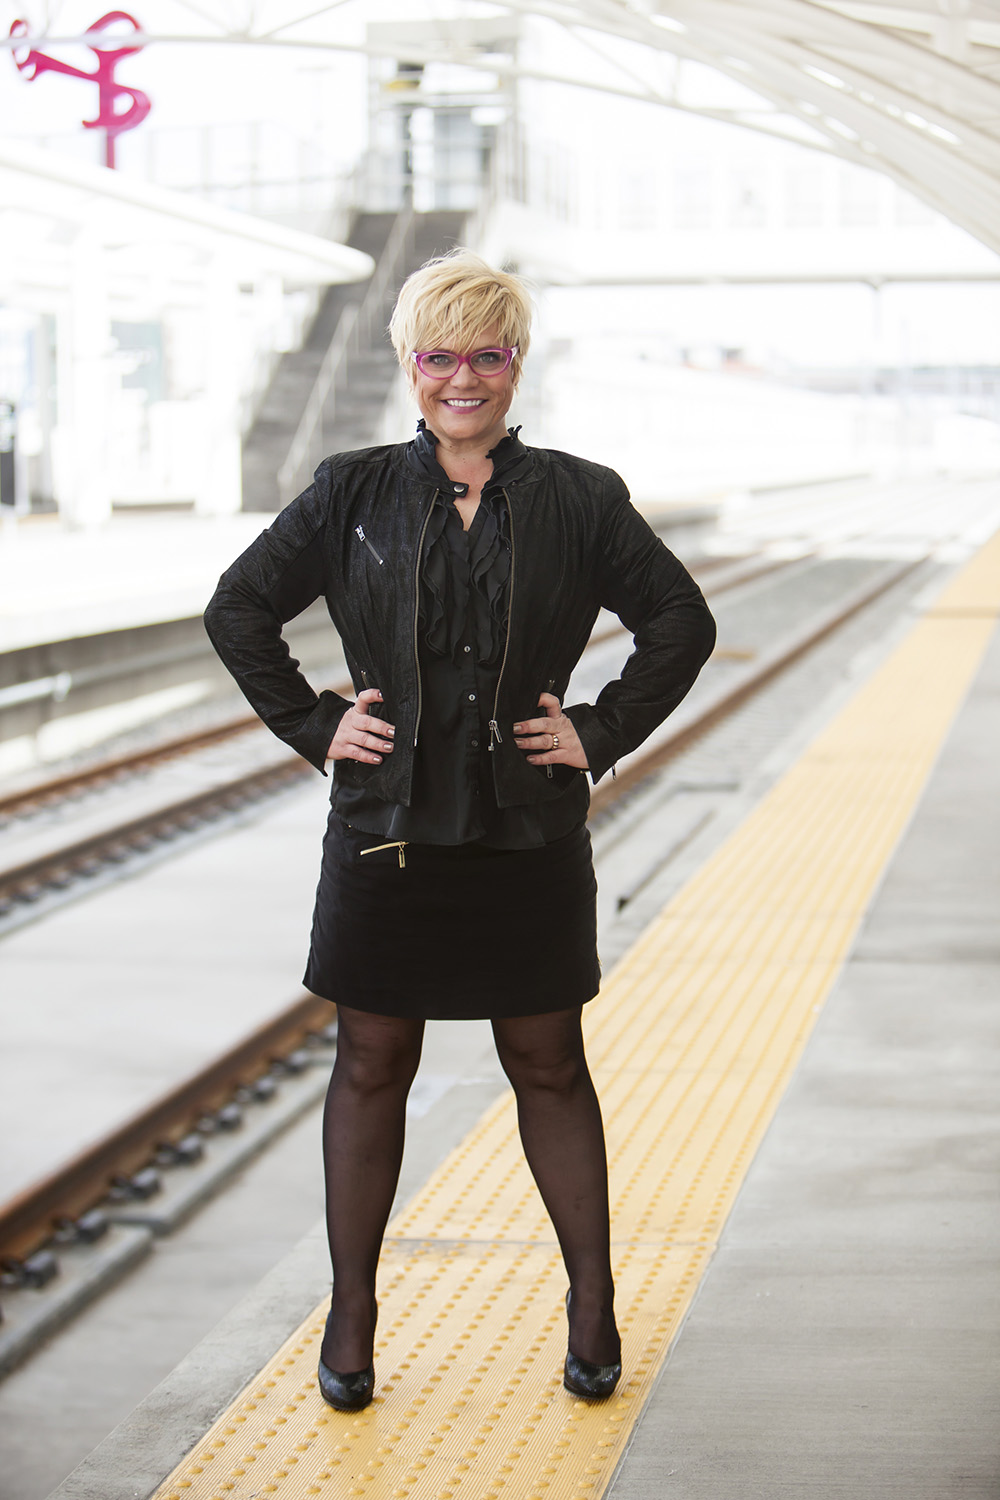 Personal Branding Photos at Union Station with Denver photographer Jennifer Koskinen | Merritt Portrait Studio